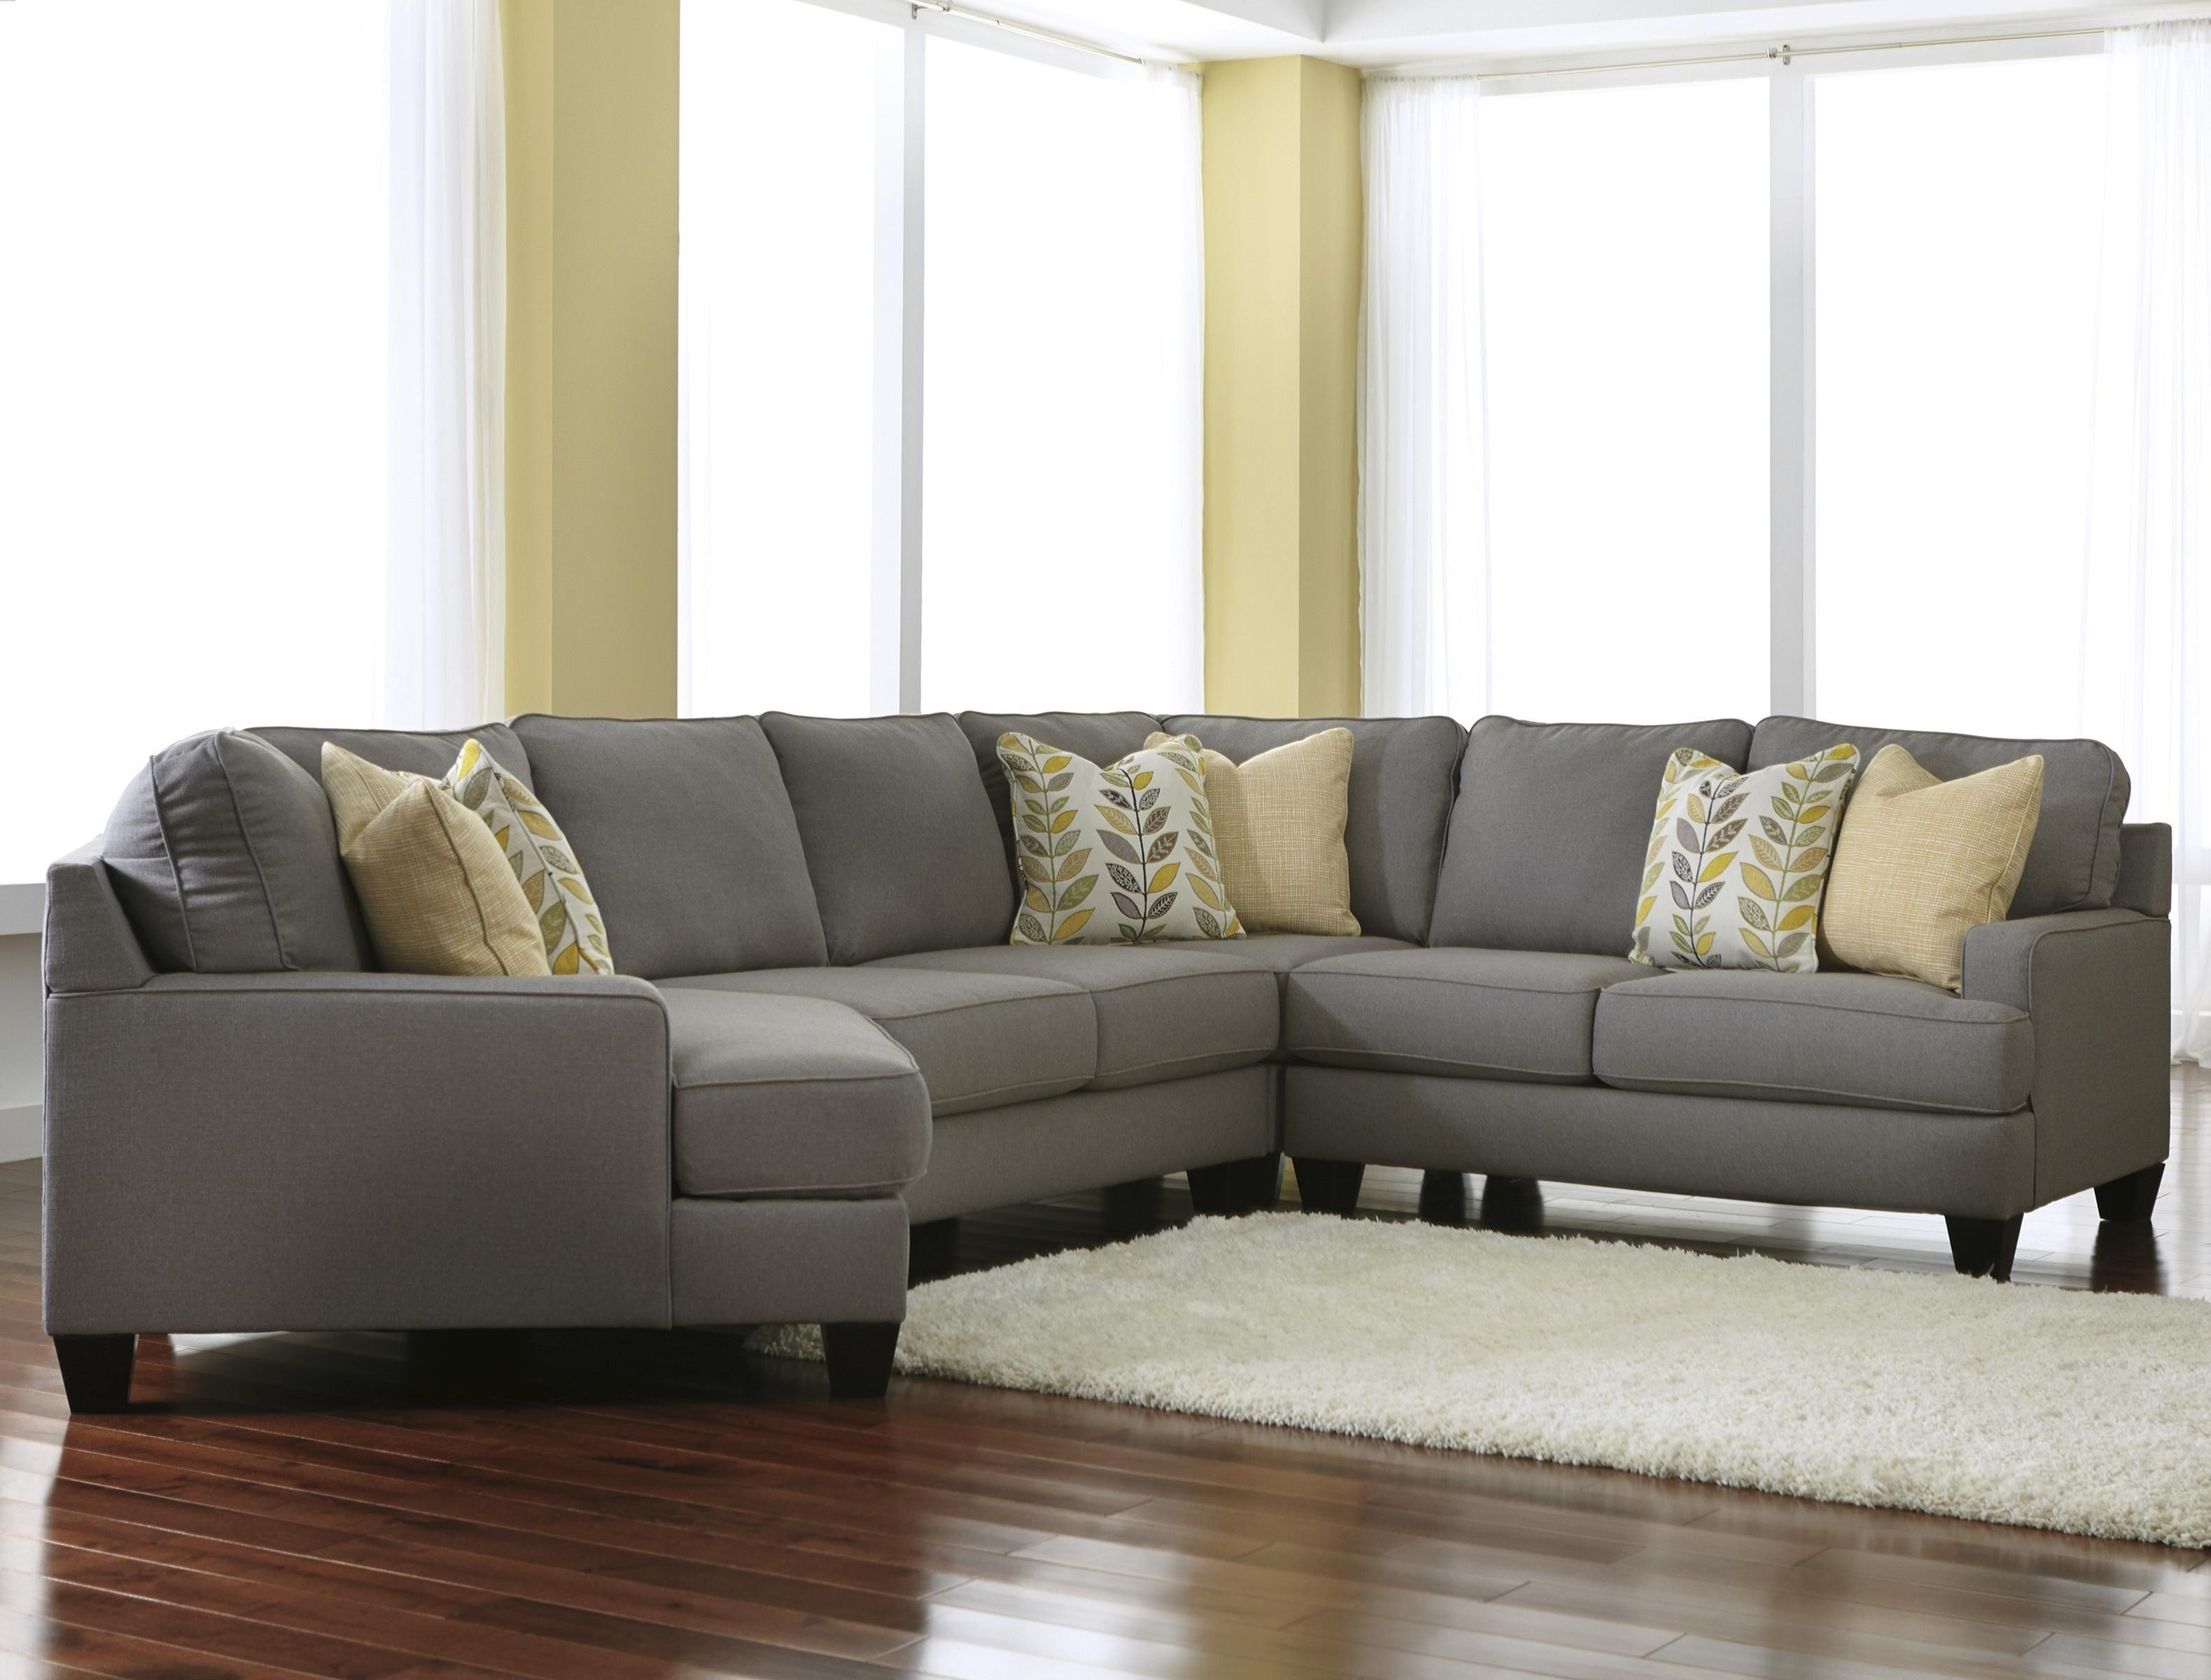 Furniture : Couch Sales New Sofas & Sectionals Living Room Furniture regarding Dillards Sectional Sofas (Image 6 of 10)